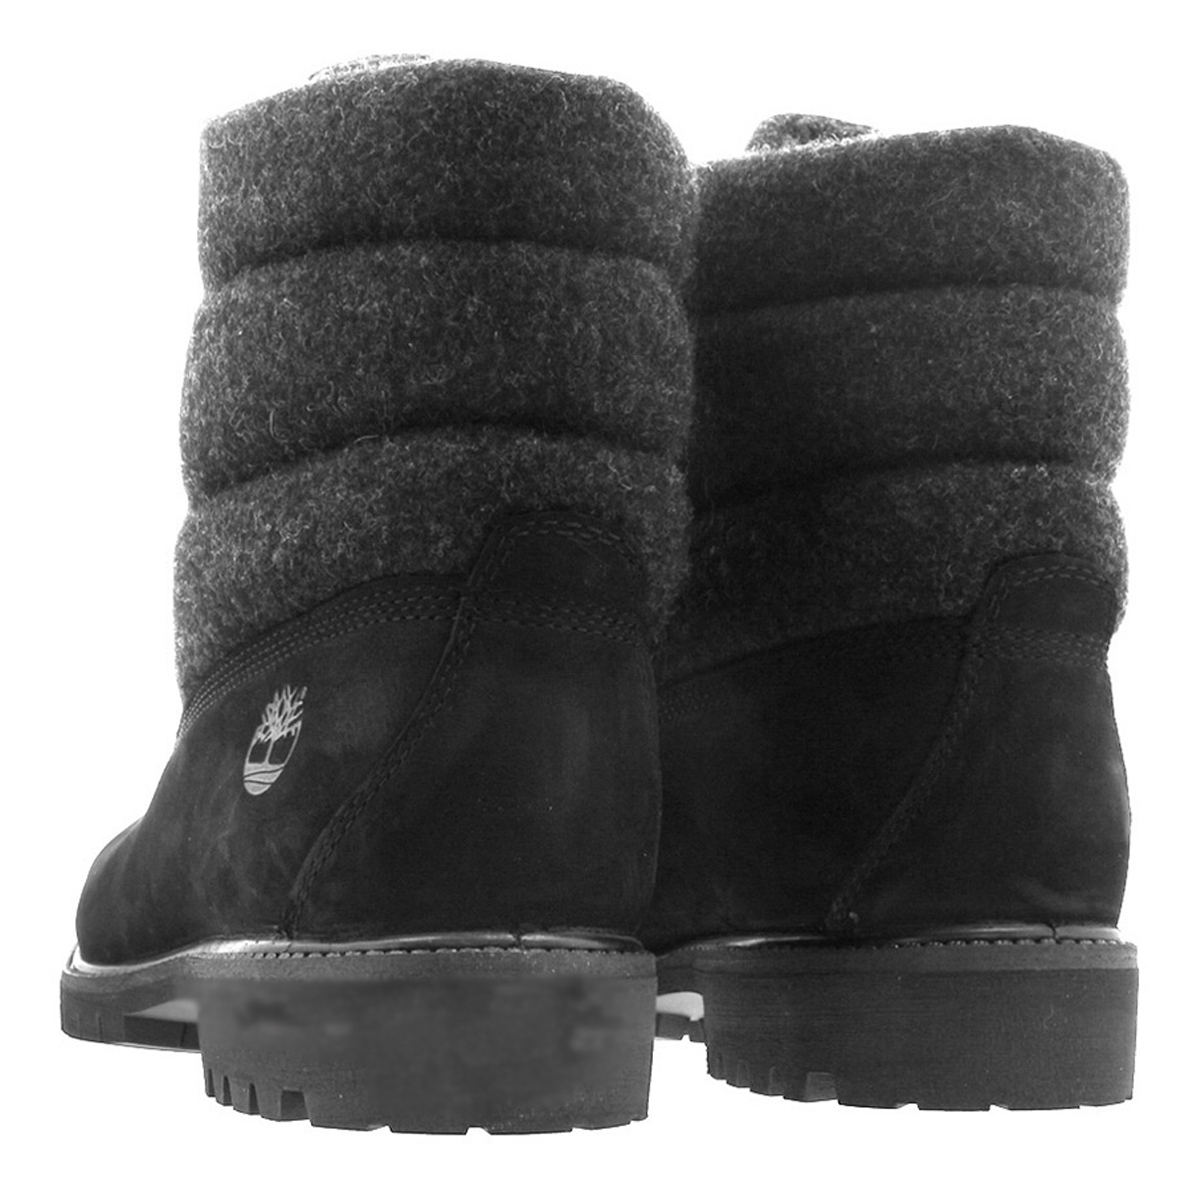 a6eb55d3911 6 inches of TIMBERLAND 6inch PREMIUM PUFFER BOOTS Timberland premium boots  BLACK NUBACK a1zr6